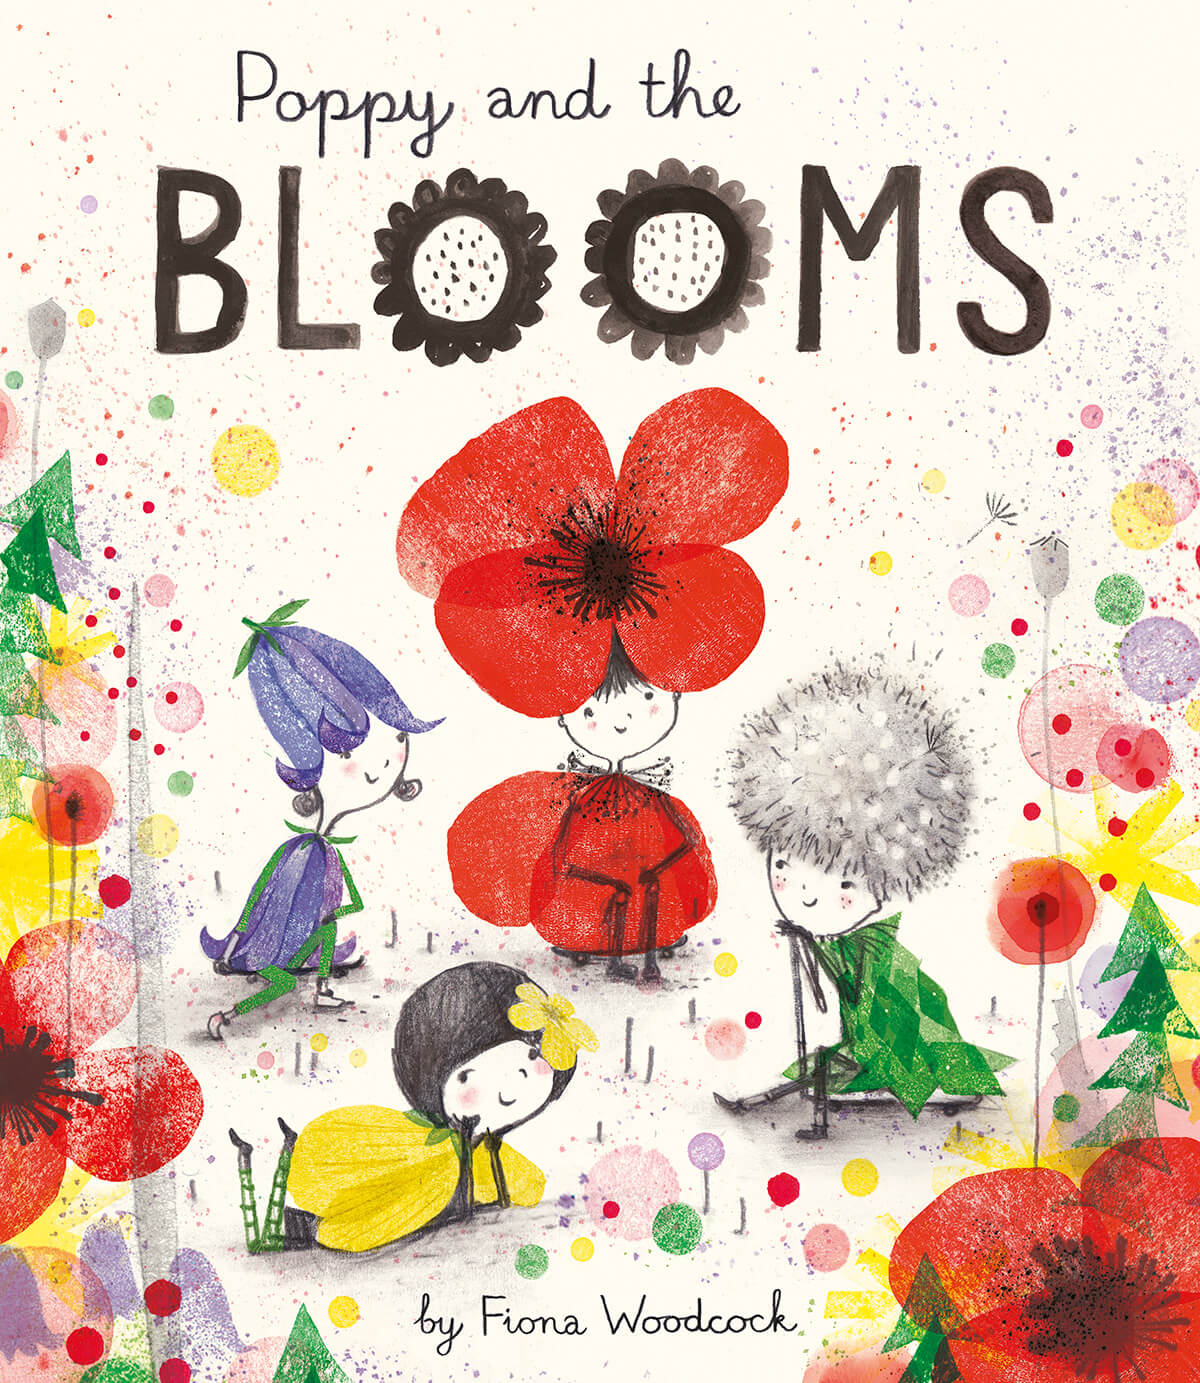 F_Woodcock_Poppy_and_the Blooms_cover